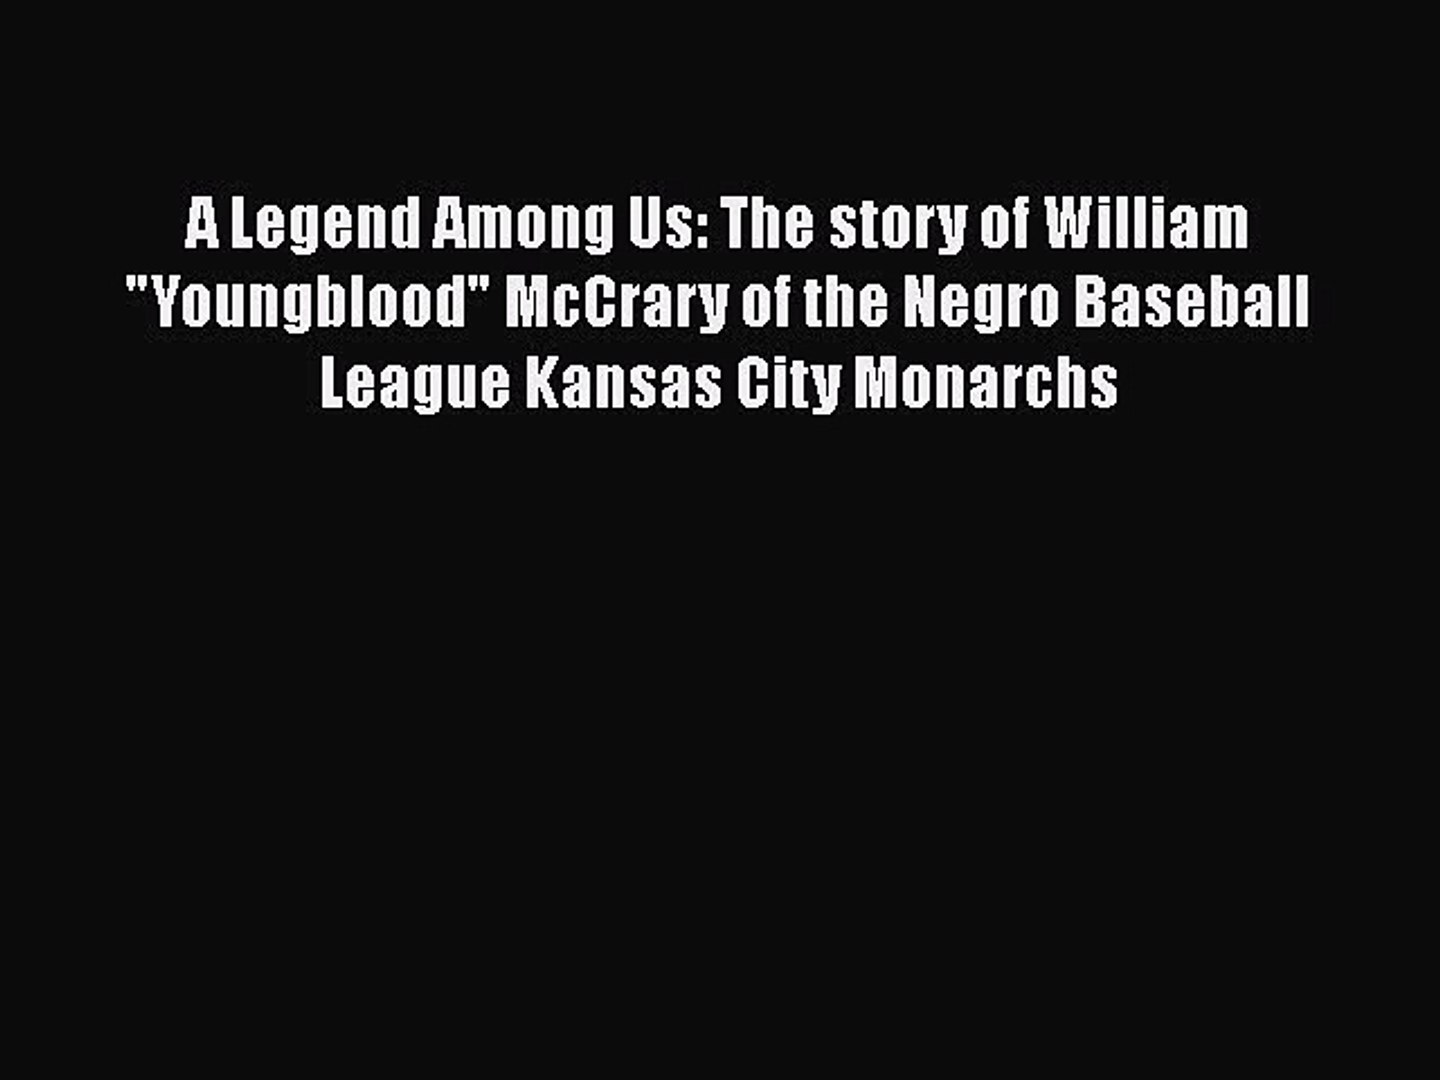 [PDF] A Legend Among Us: The story of William Youngblood McCrary of the Negro Baseball League